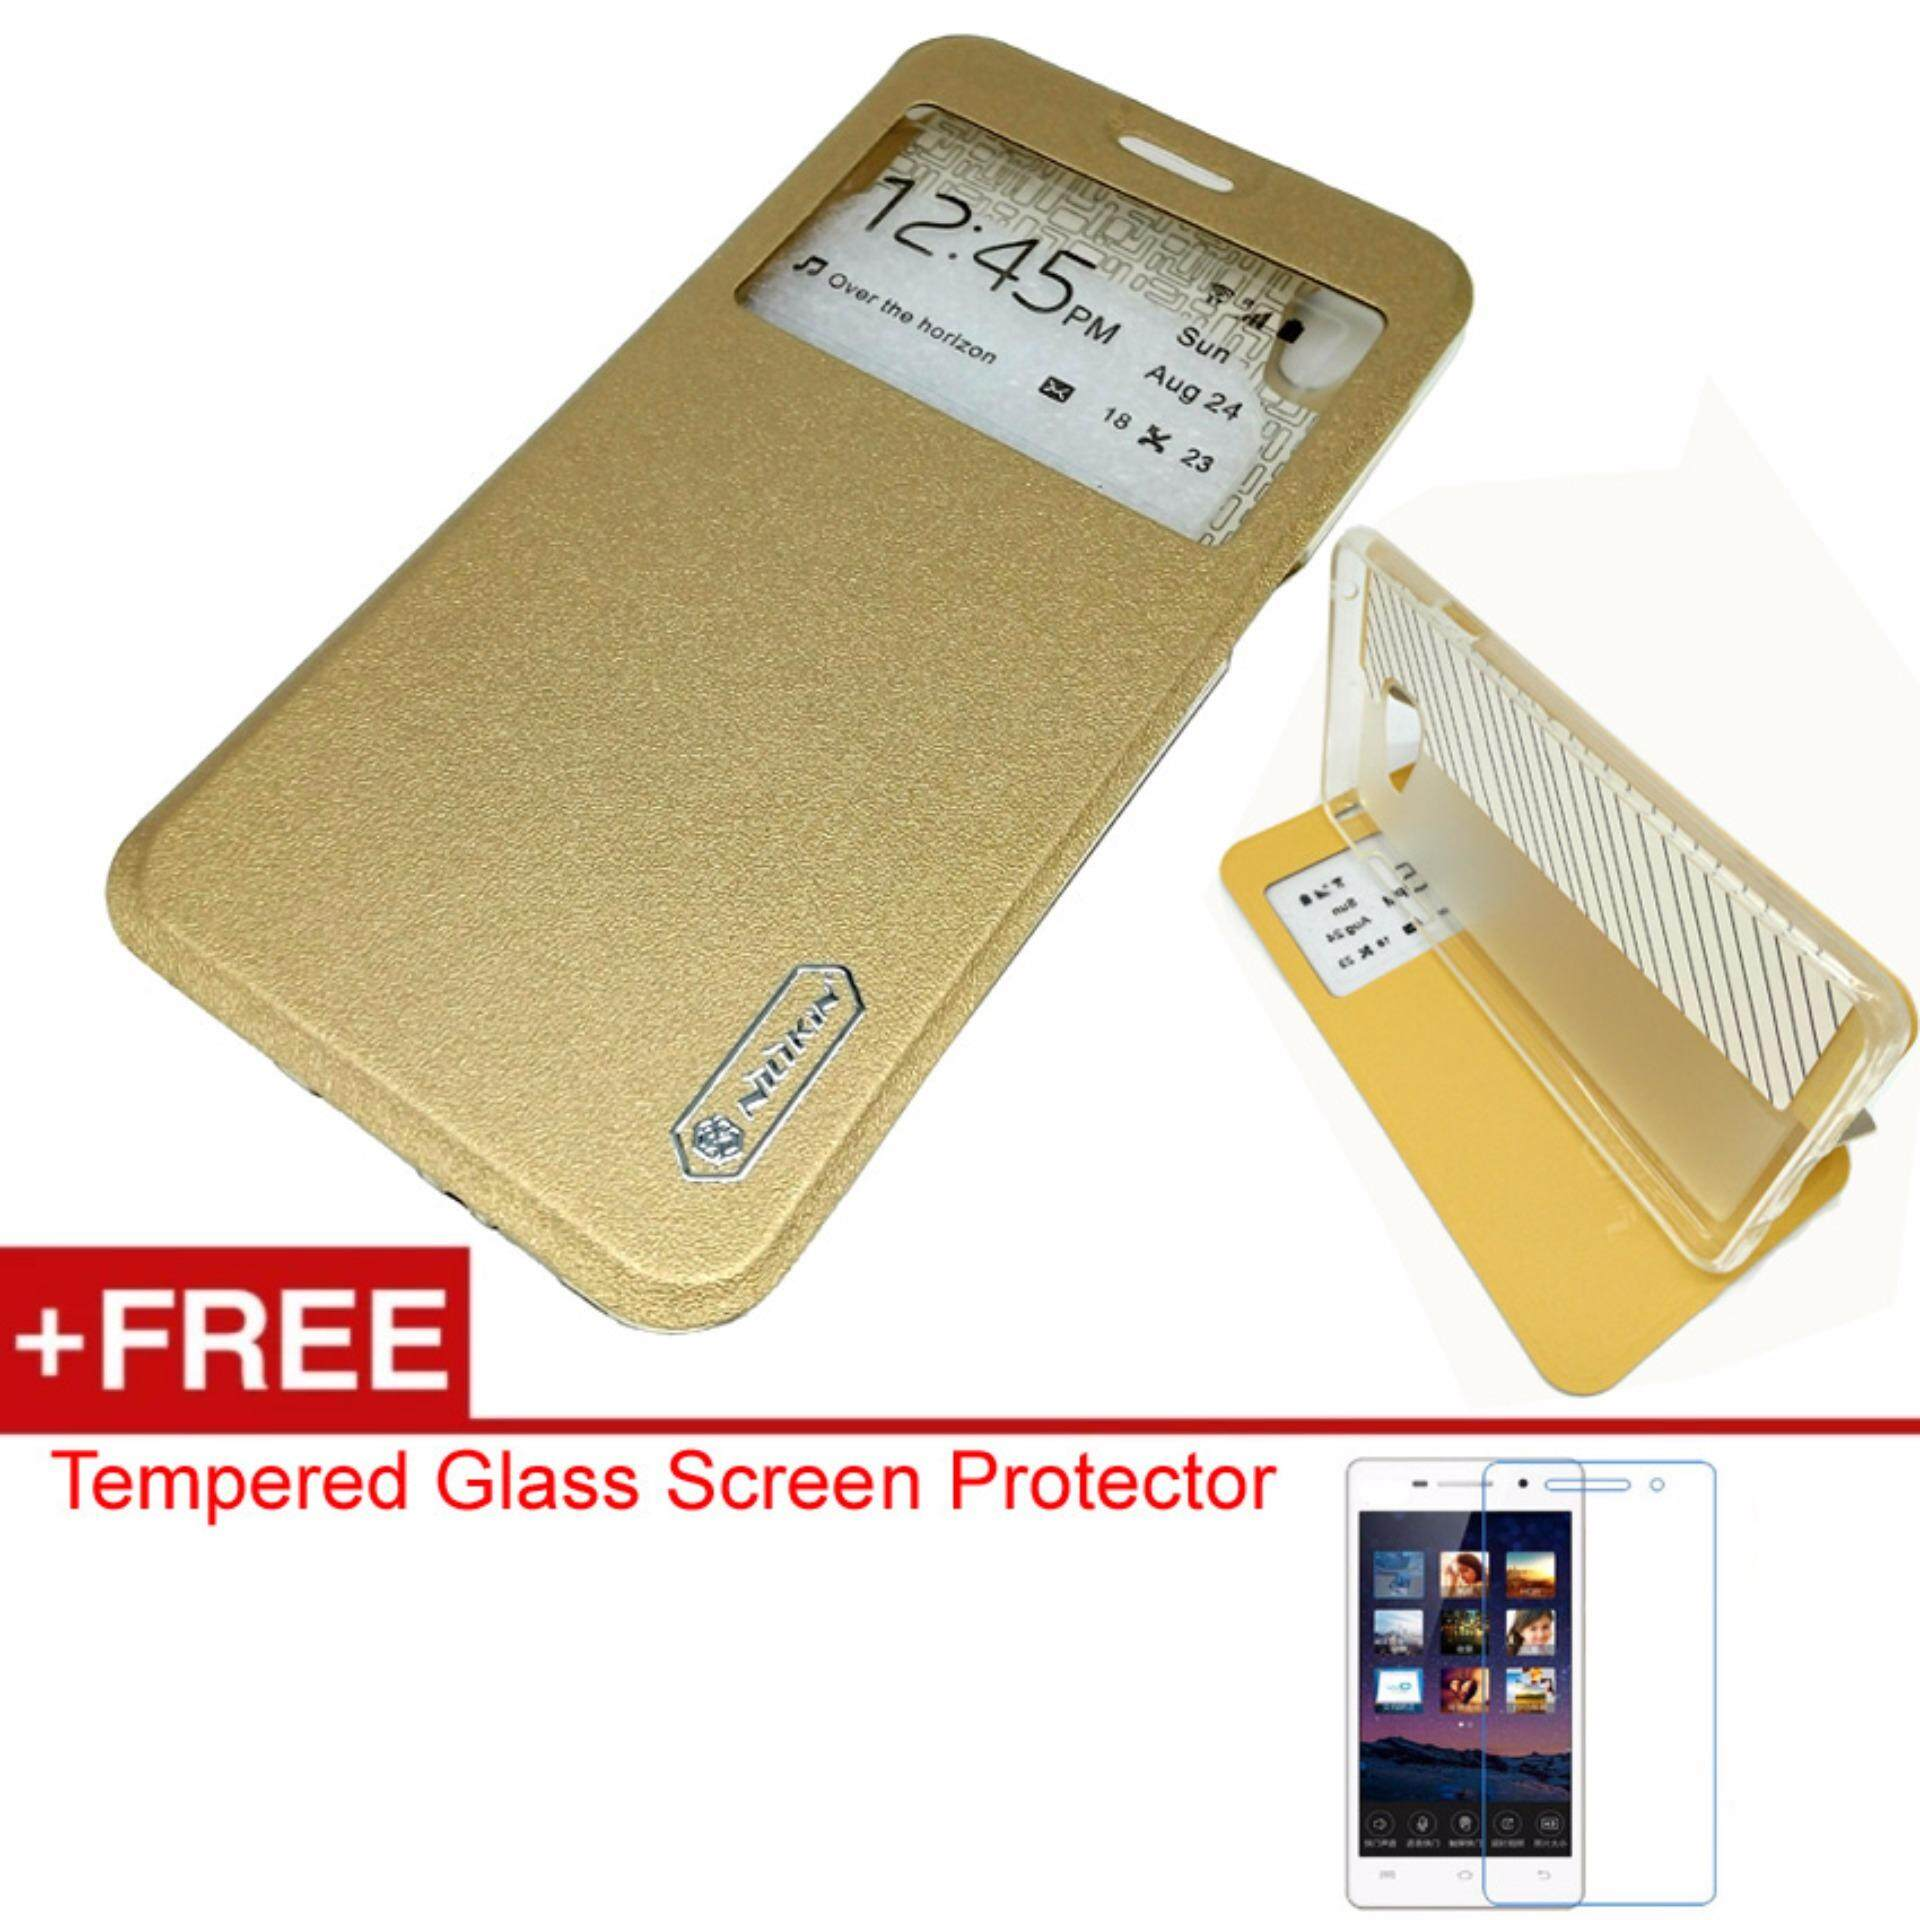 Pg Mall Malaysia Online Shopping Buy Sell Smartphones Tablets Byt Flower Debossed Leather Flip Cover Case